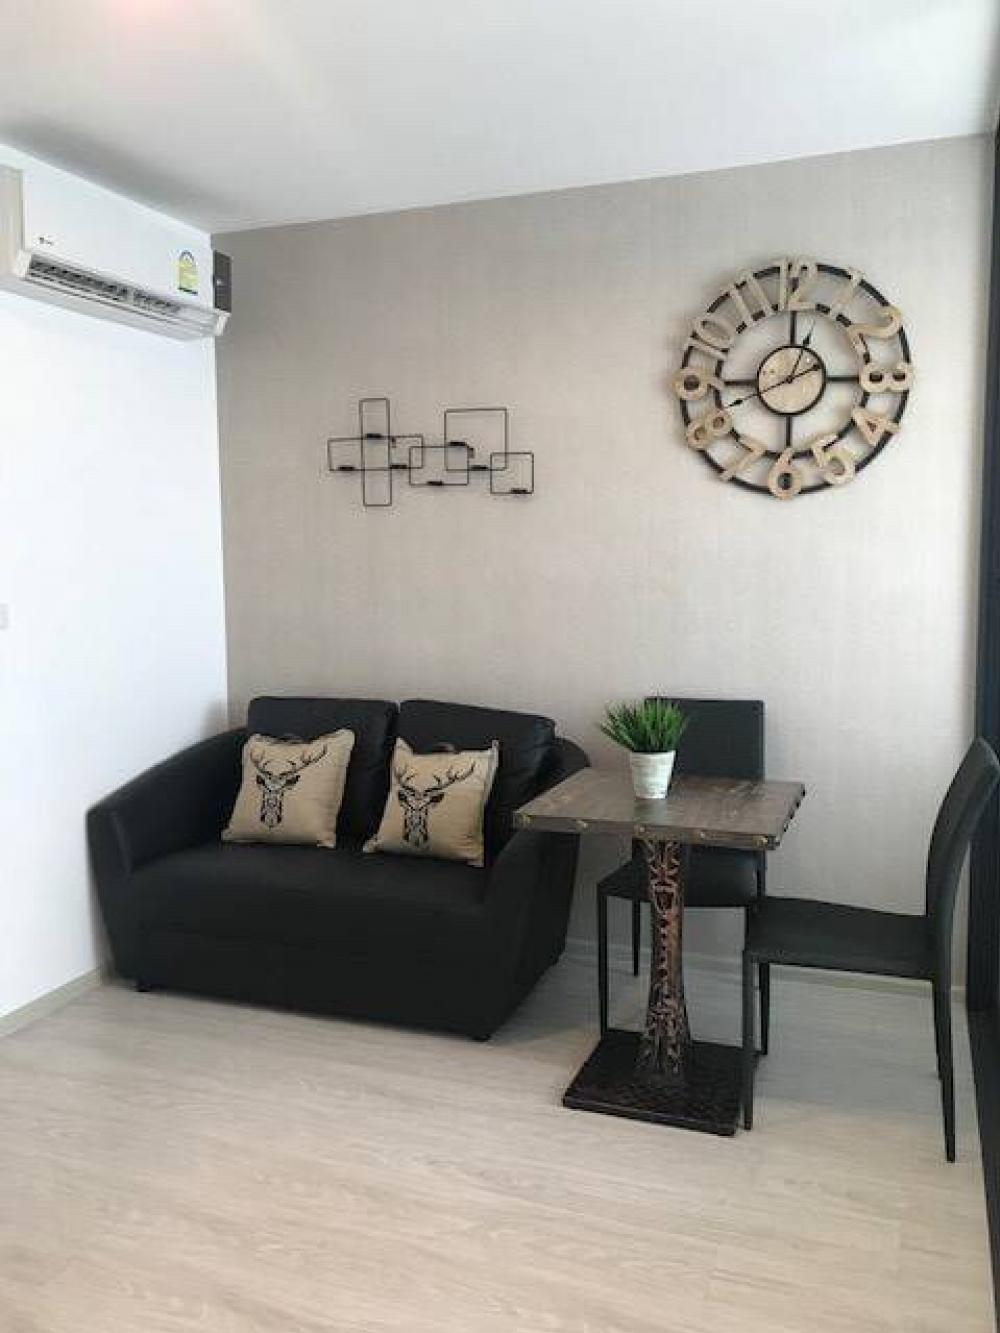 For RentCondoBang Sue, Wong Sawang : For rent, IDEO mobi, Wongsawang, 1 bedroom, 1 bathroom, size 24.6 square meters, price 9,000 baht, interested contact 0654649497